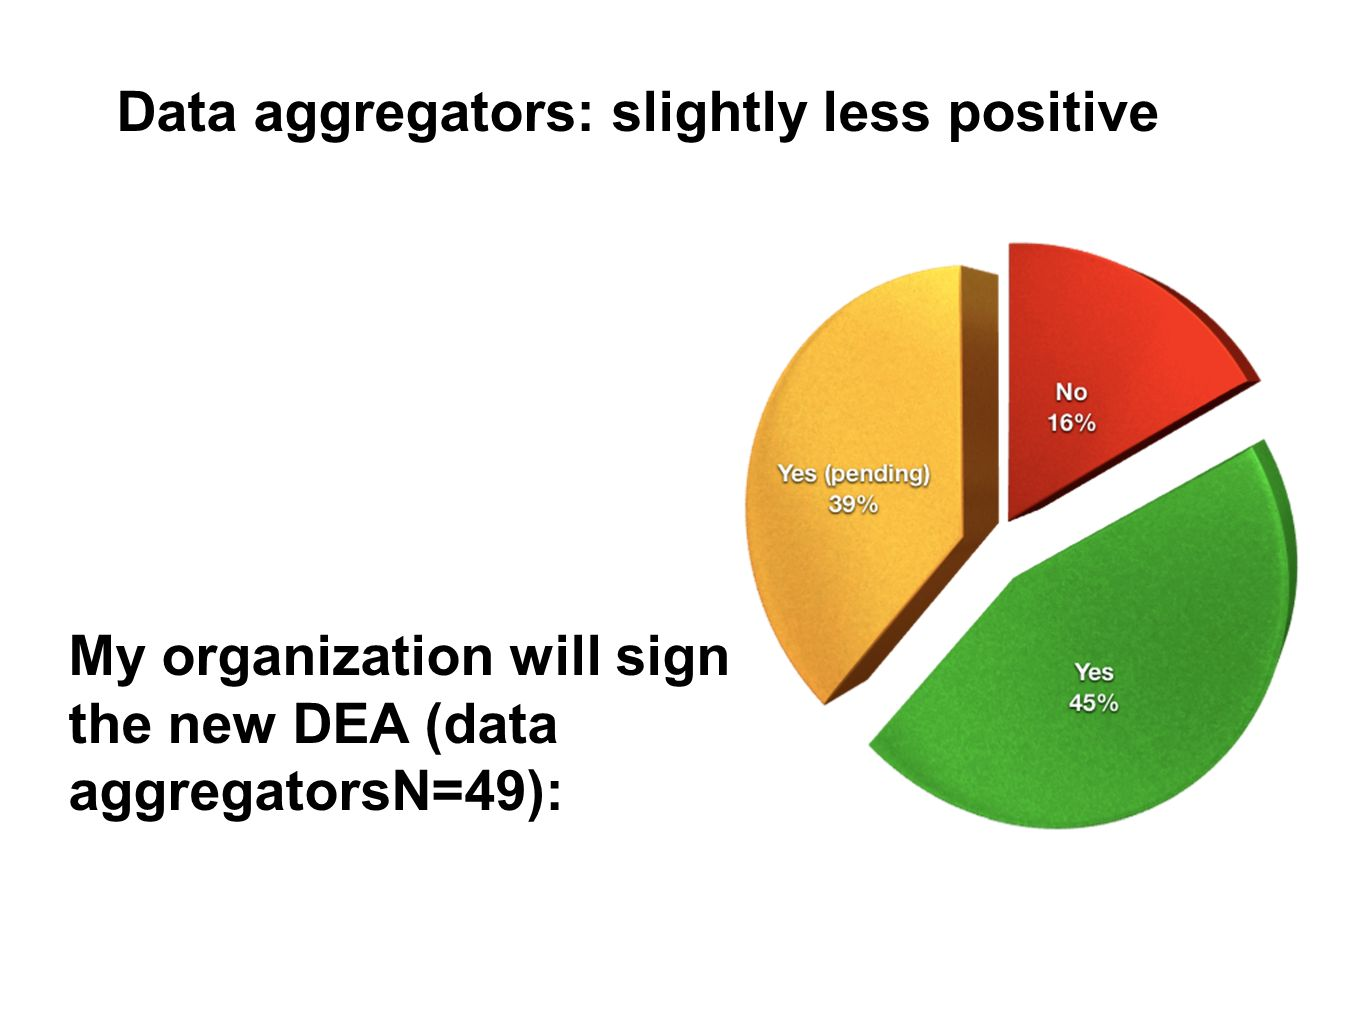 My organization will sign the new DEA (data aggregatorsN=49): Data aggregators: slightly less positive